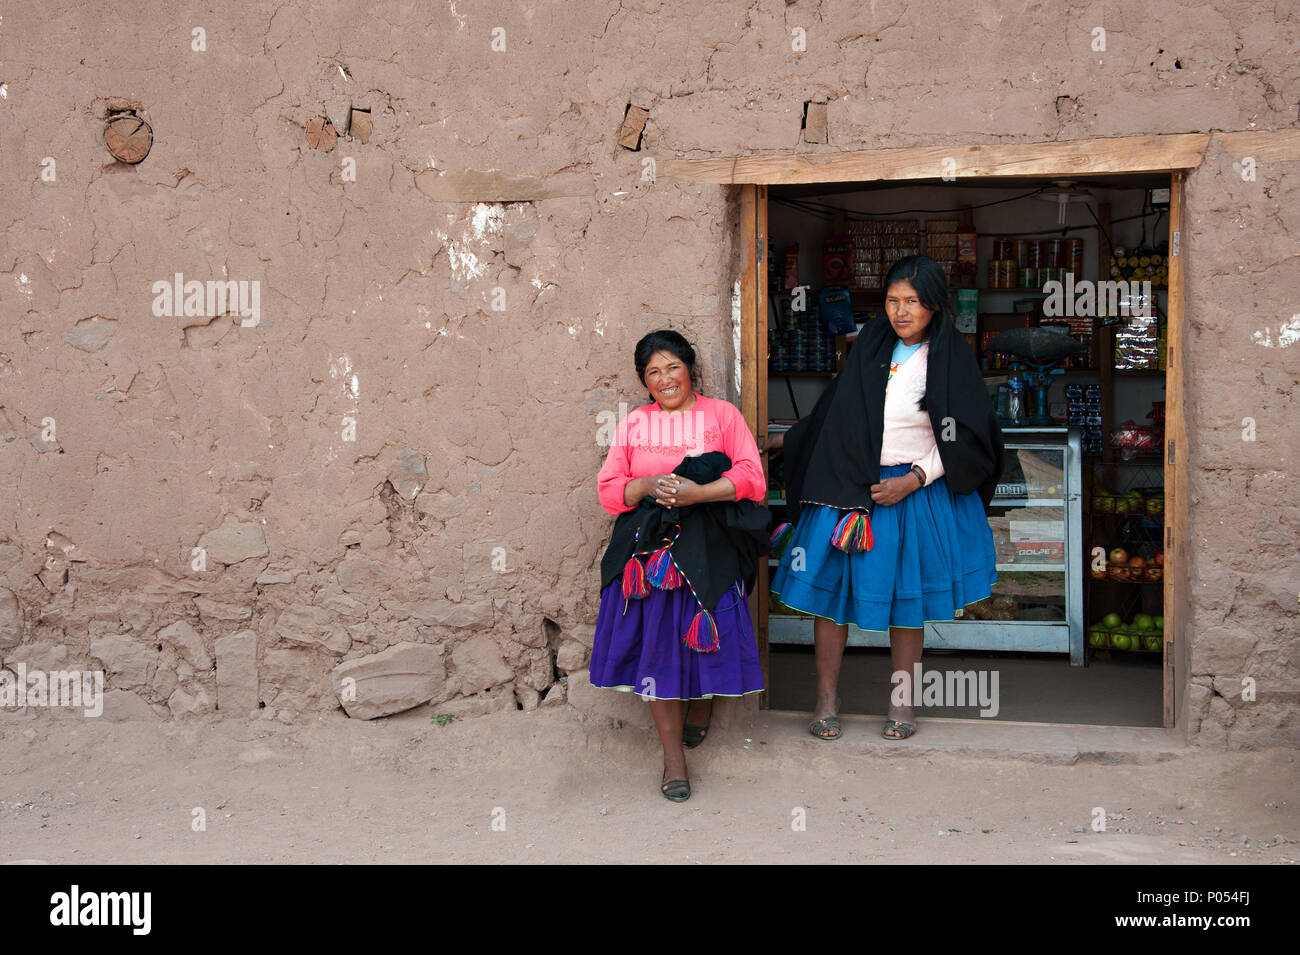 Two local women in traditional peruvian skirts pose for a photograoph outside their shop on Taquile island, Lake Titicaca. Peru - Stock Image